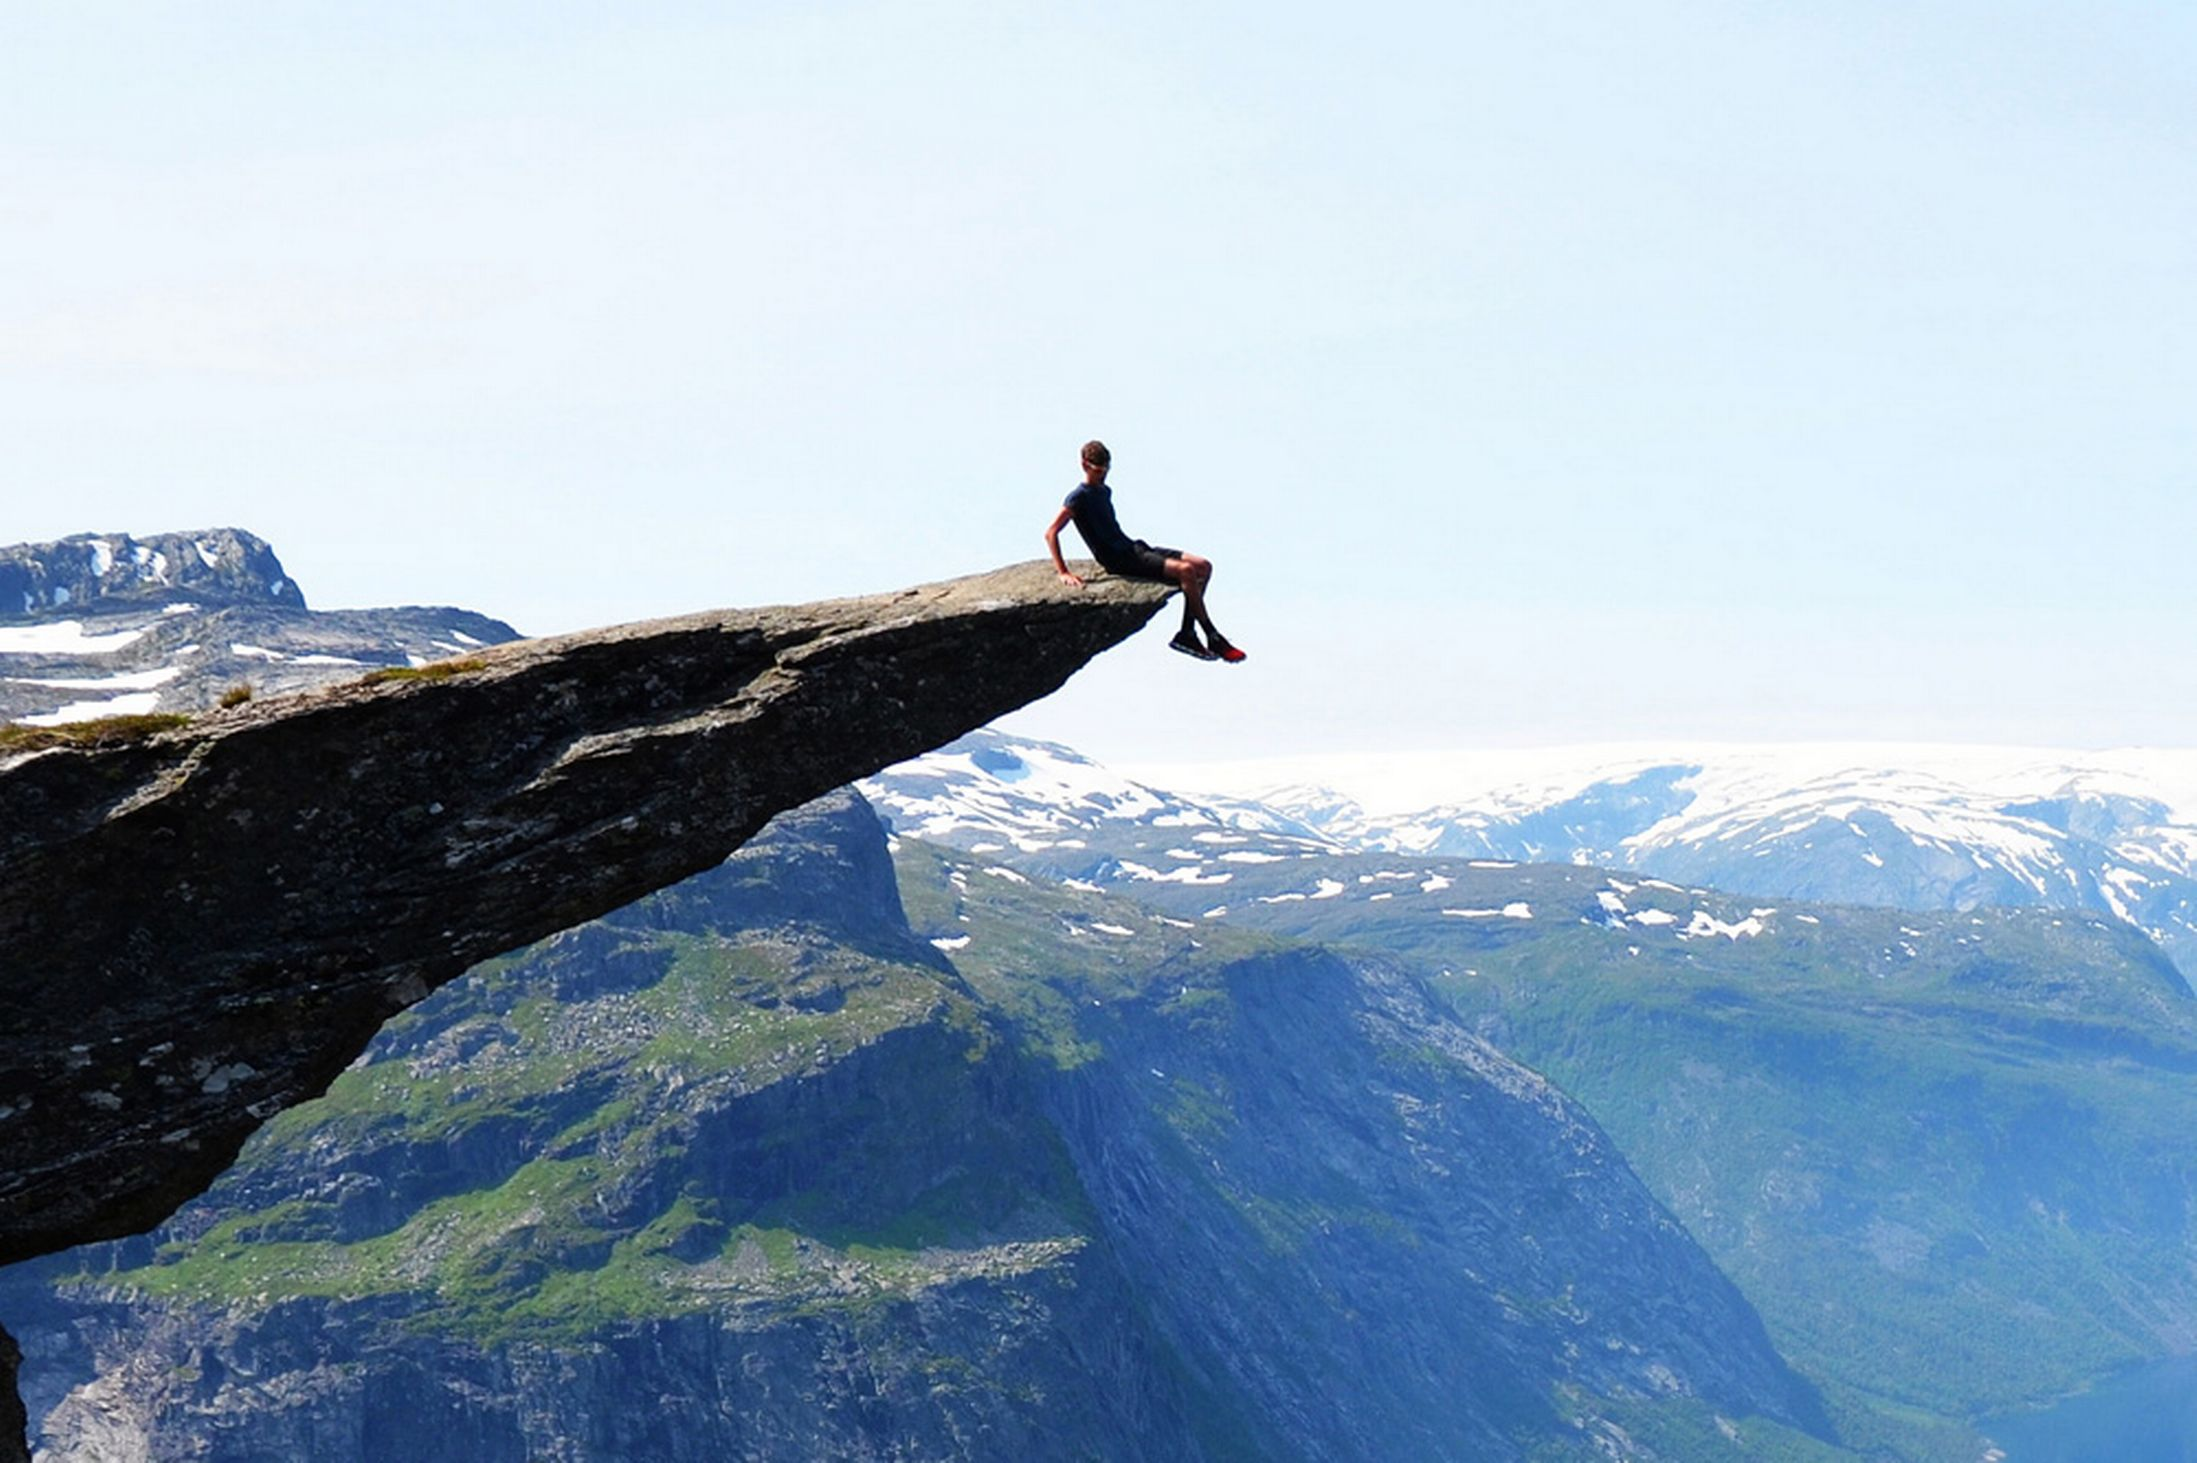 Tomas-Havel-poses-on-the-edge-of-overhanging-Trolltunga-ledge